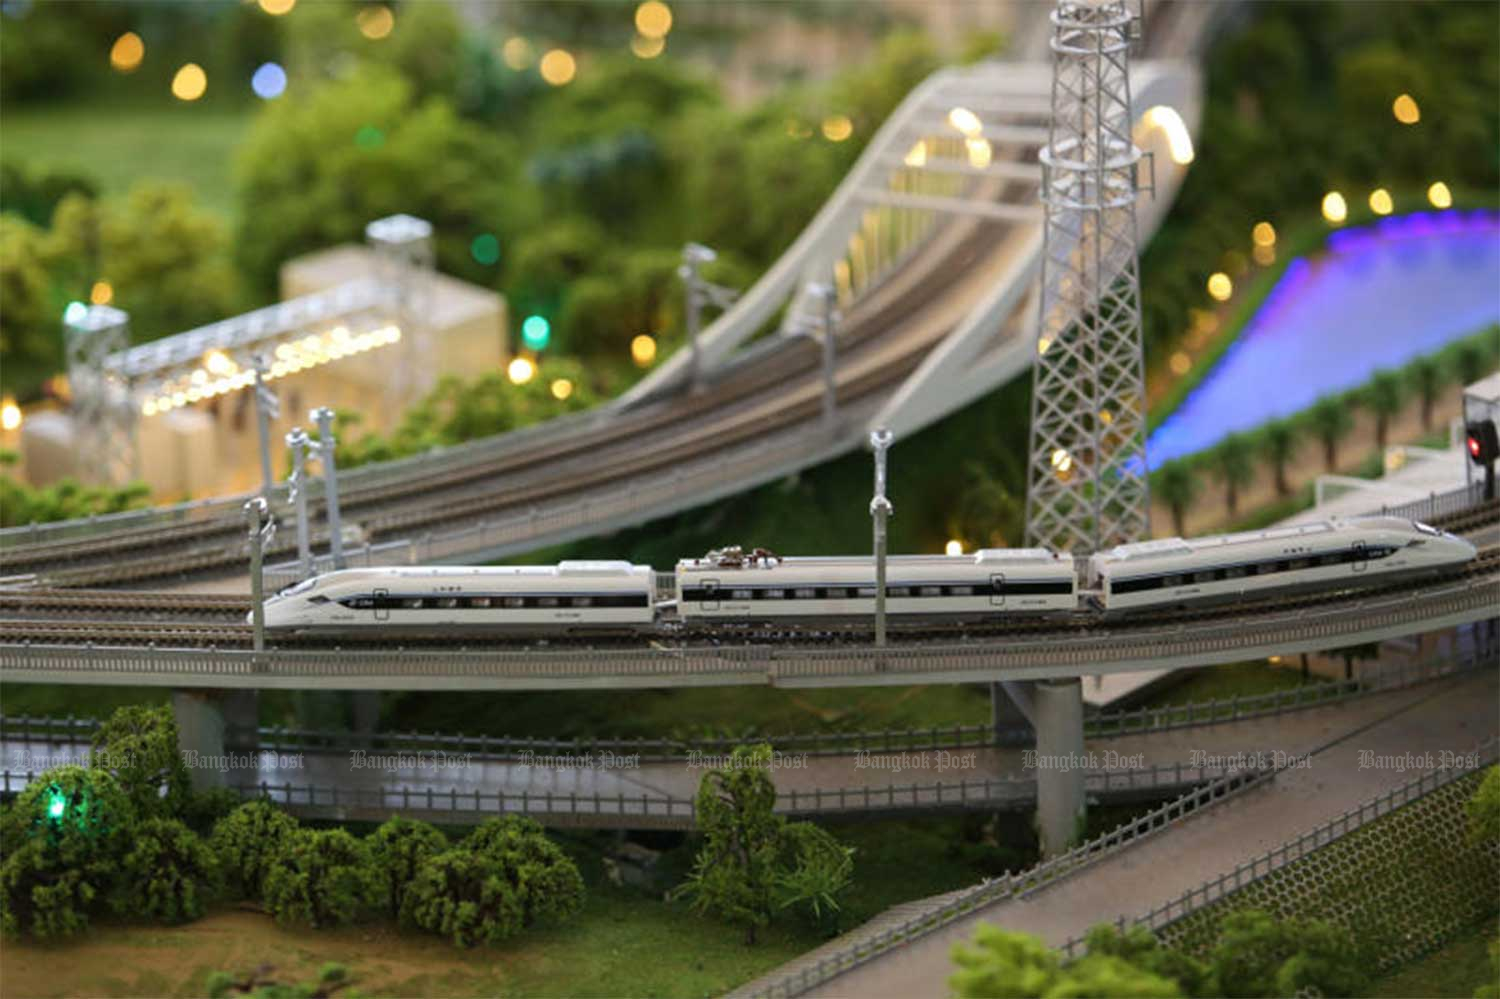 A model of the Thai-Chinese high-speed railway's first section between Bangkok and Nakhon Ratchasima is on display in December 2017. (File photo)